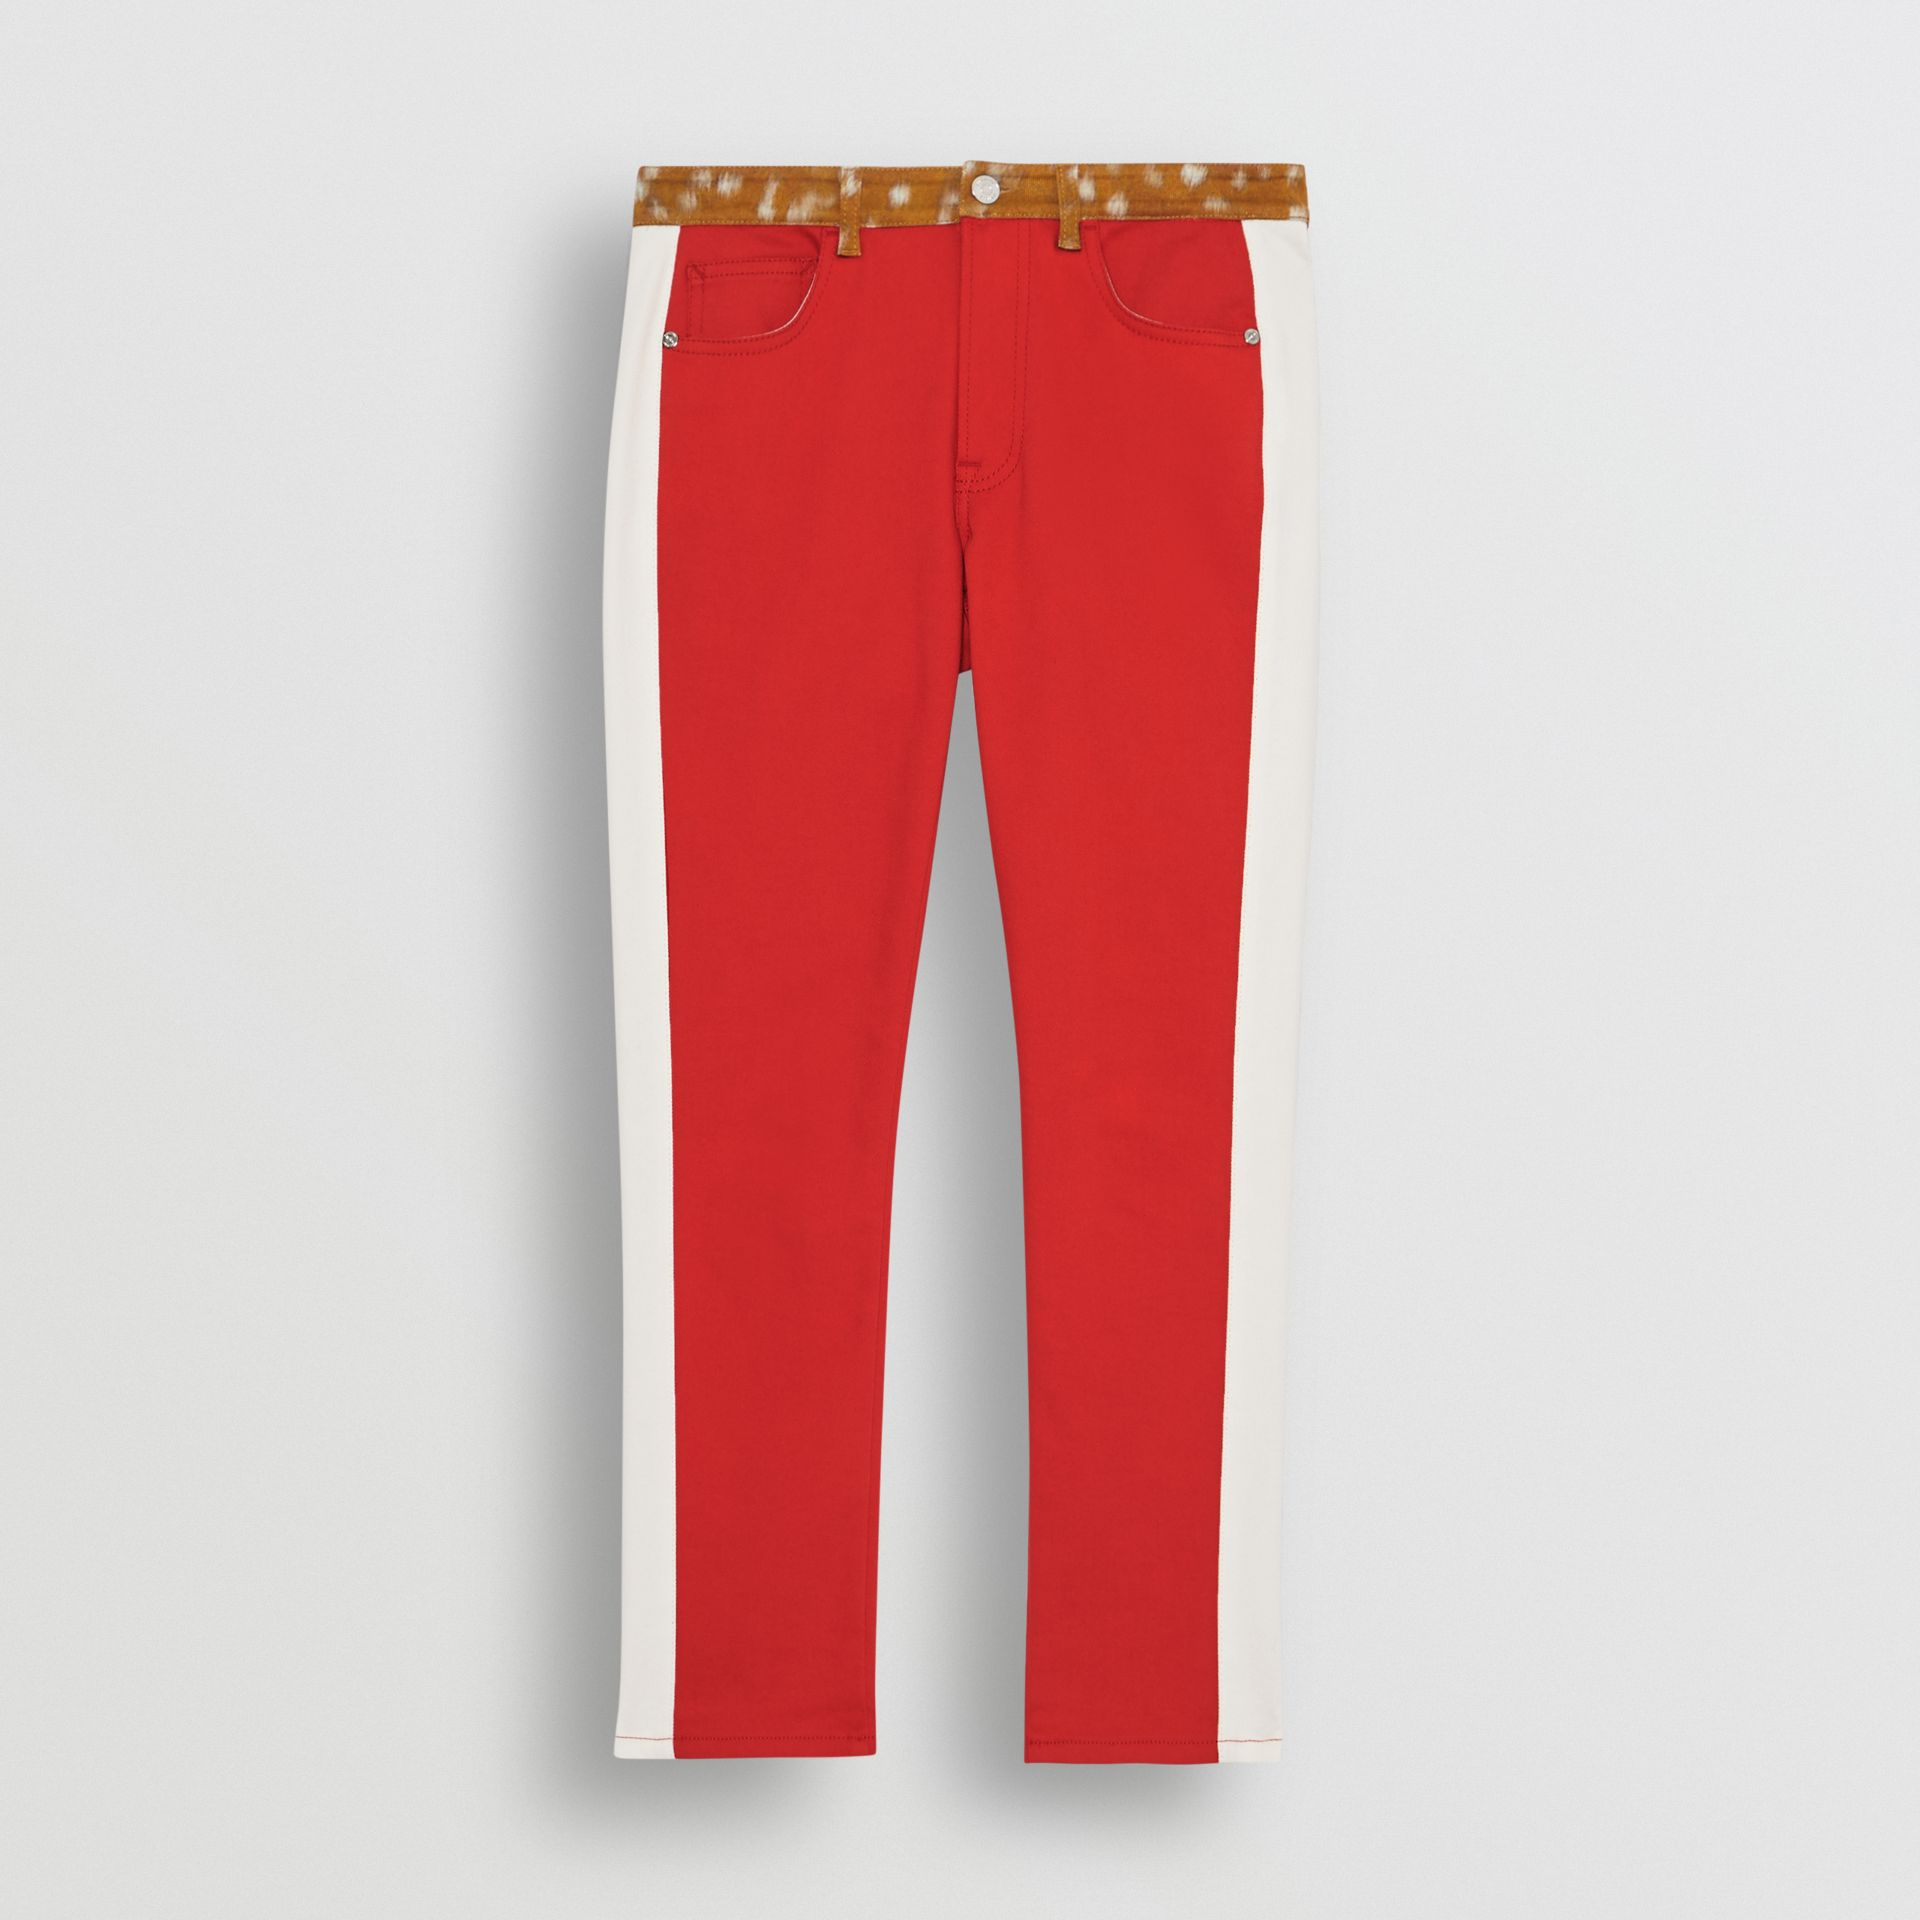 Straight Fit Deer Print Trim Japanese Denim Jeans in Bright Red - Women | Burberry United Kingdom - gallery image 3